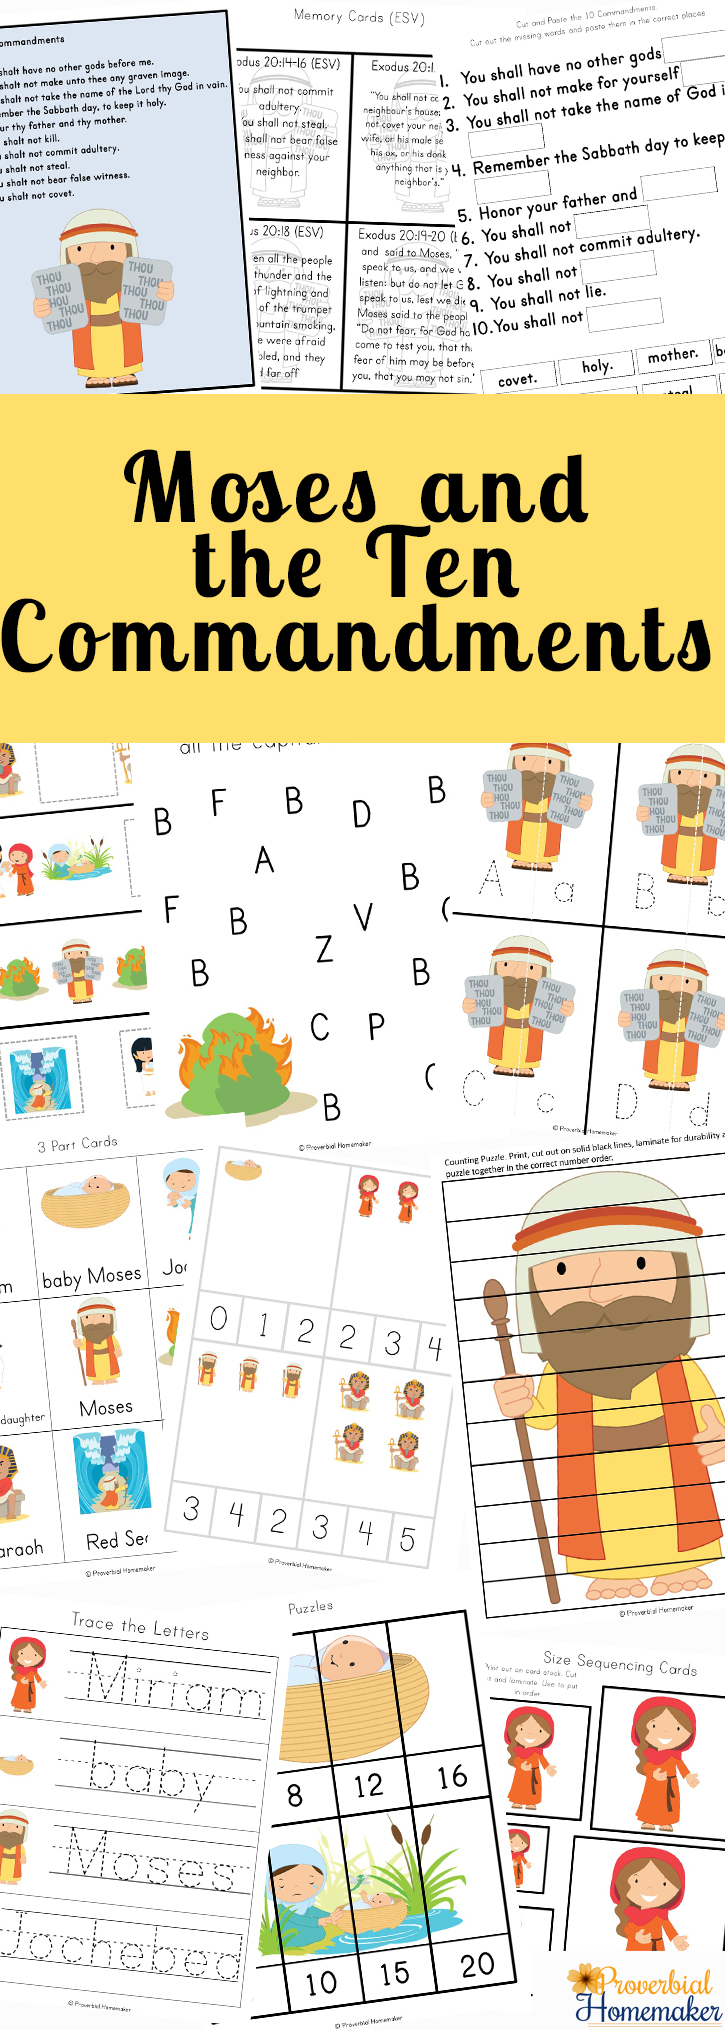 graphic relating to Ten Commandments Printable Activities titled Moses and the 10 Commandments Printable Pack - Proverbial